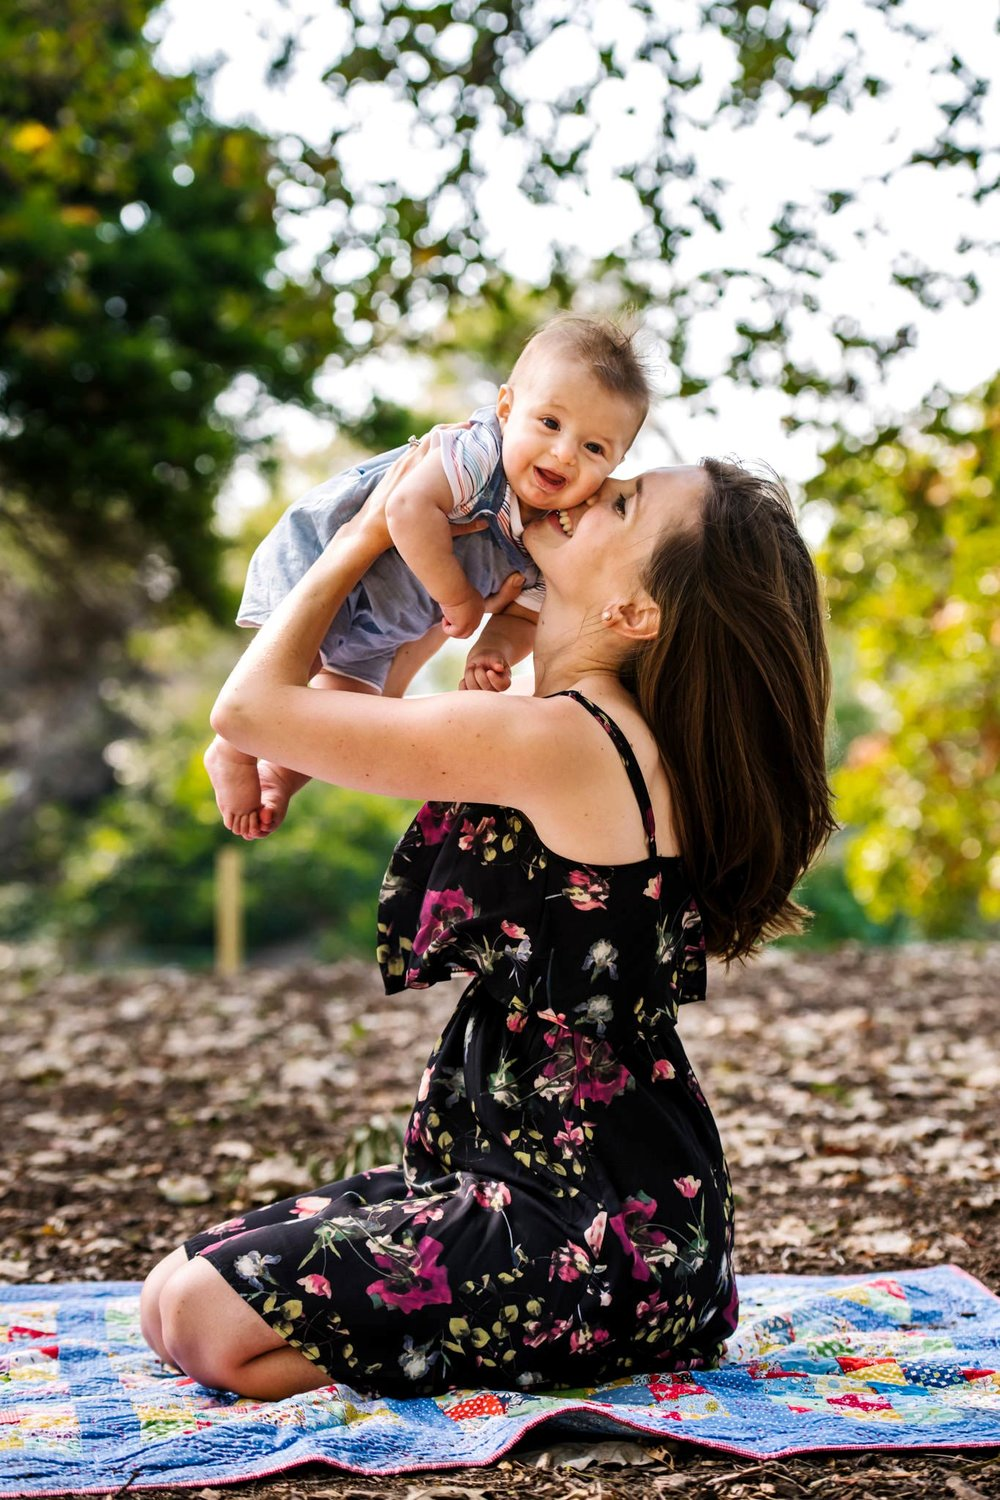 Mum kisses baby on the cheek during park photo session